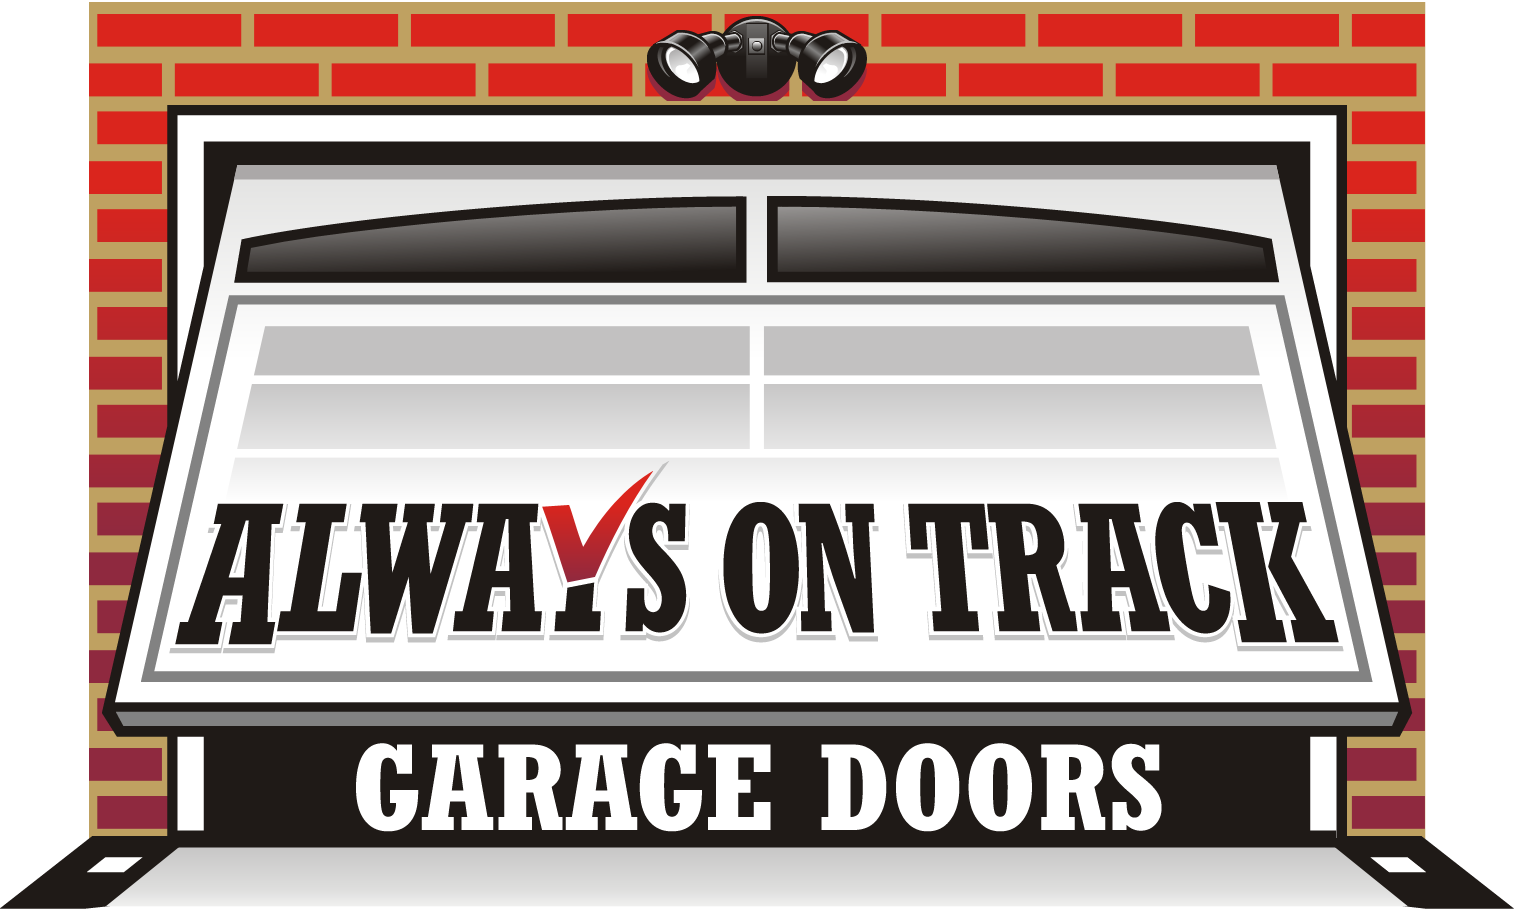 Always on track Garage doors needs to show they live up to there name